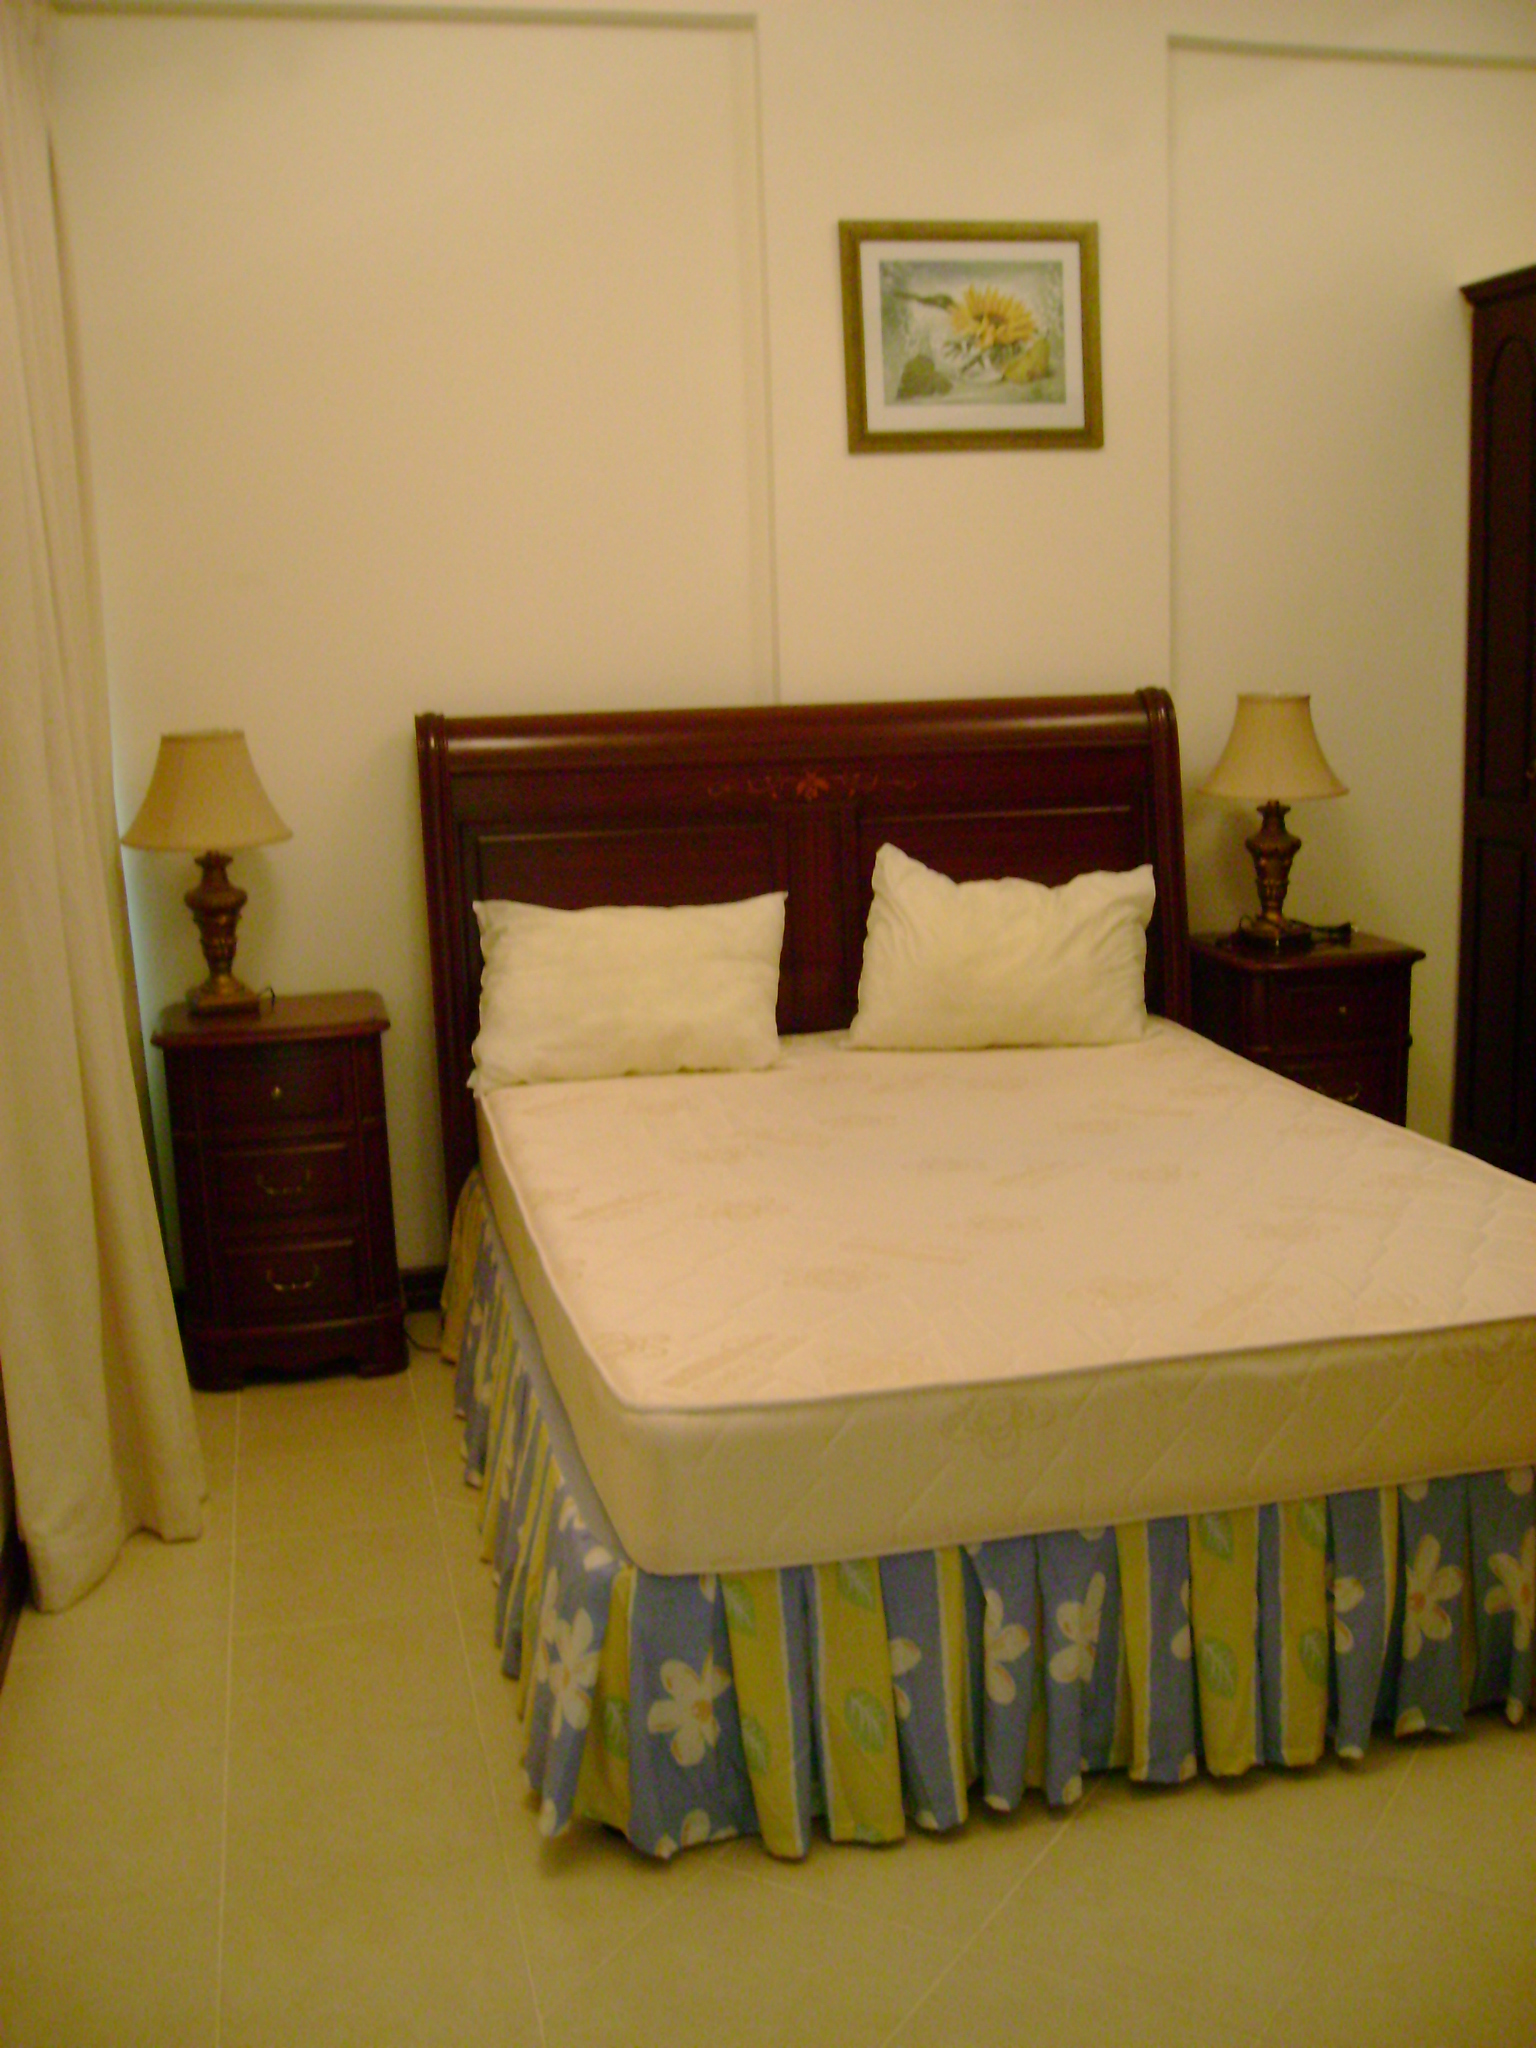 FLATS FOR RENT IN BAHRAIN,find your ideal flat rental in